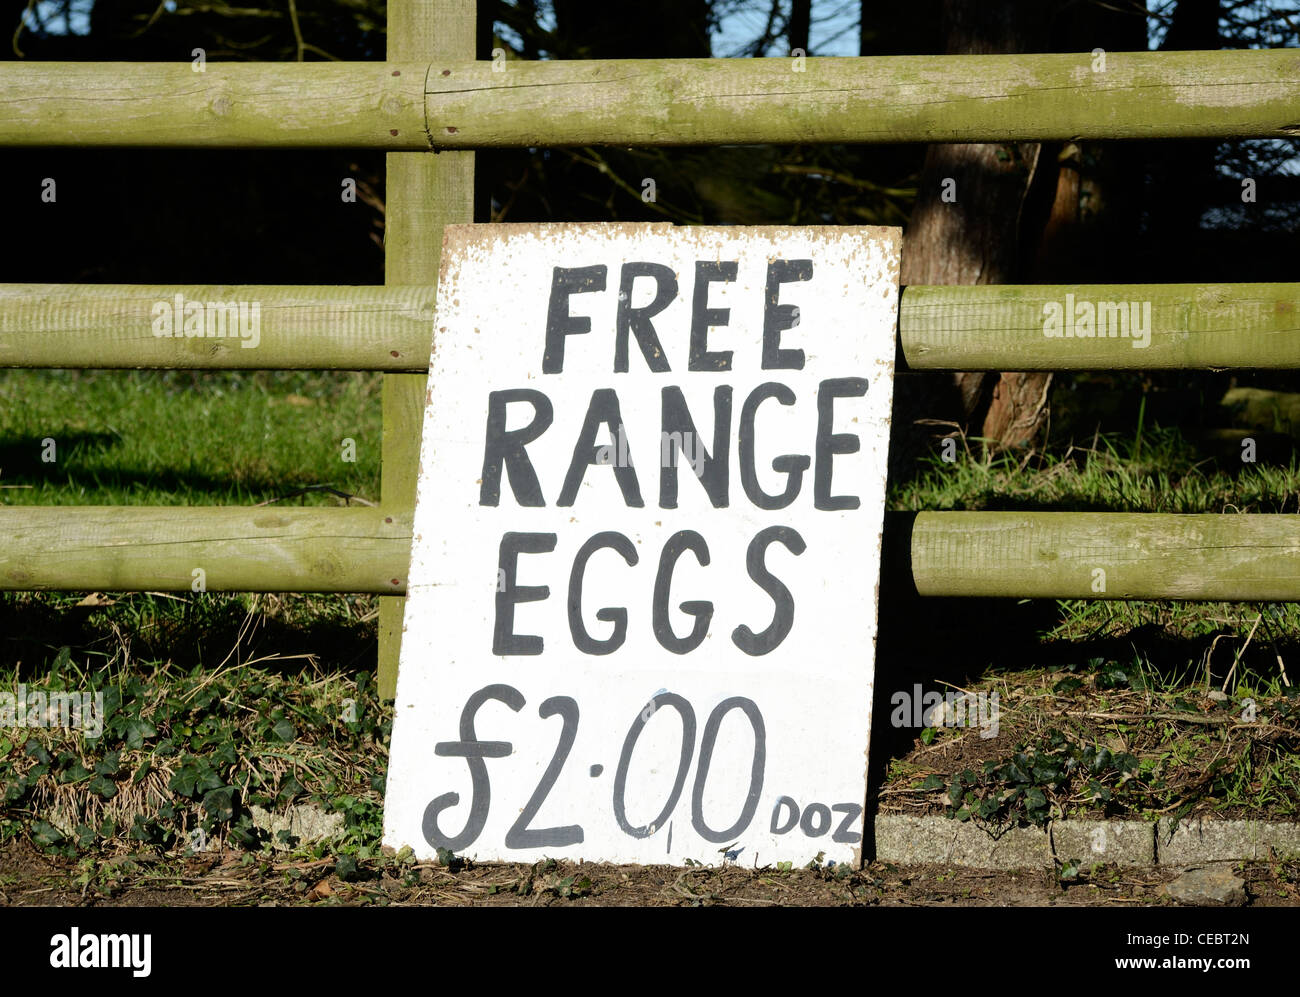 ' Free range eggs '  for sale sign - Stock Image